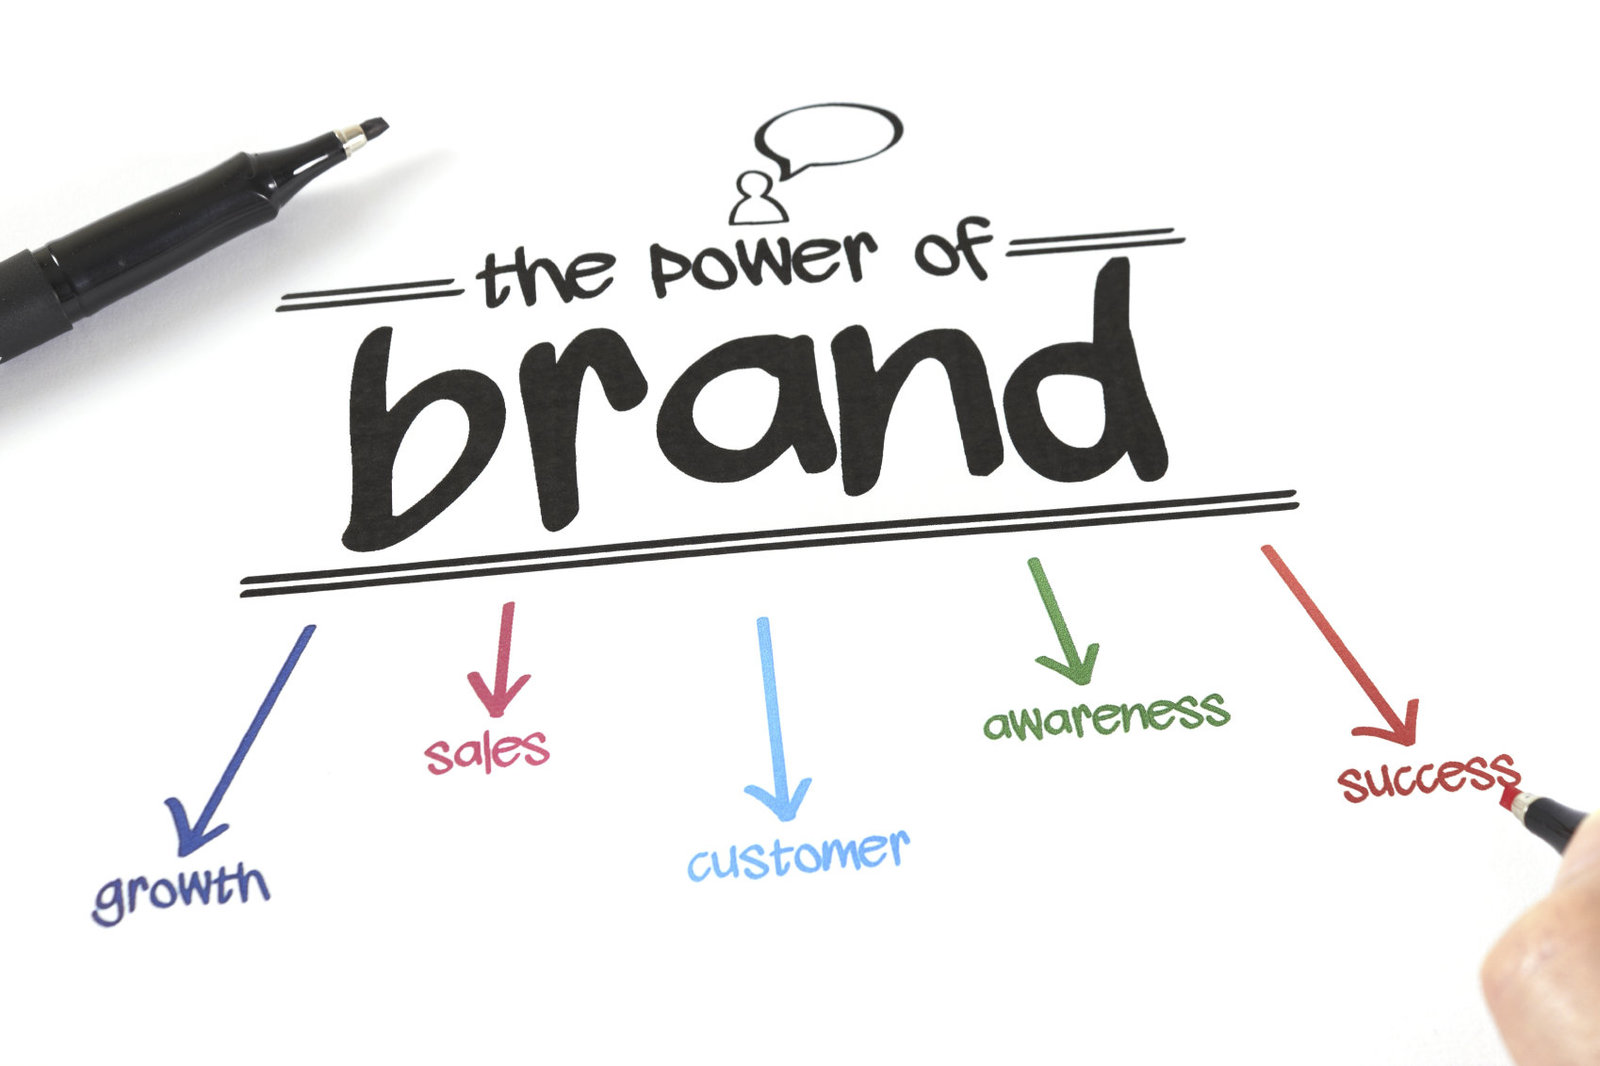 Influential Design, Branding, Business growth, Business Sales, Customers, Awareness, Marketing, Success, Powerful brand, Positive brand, Design, Brand voice, Successful branding in Worcestershire